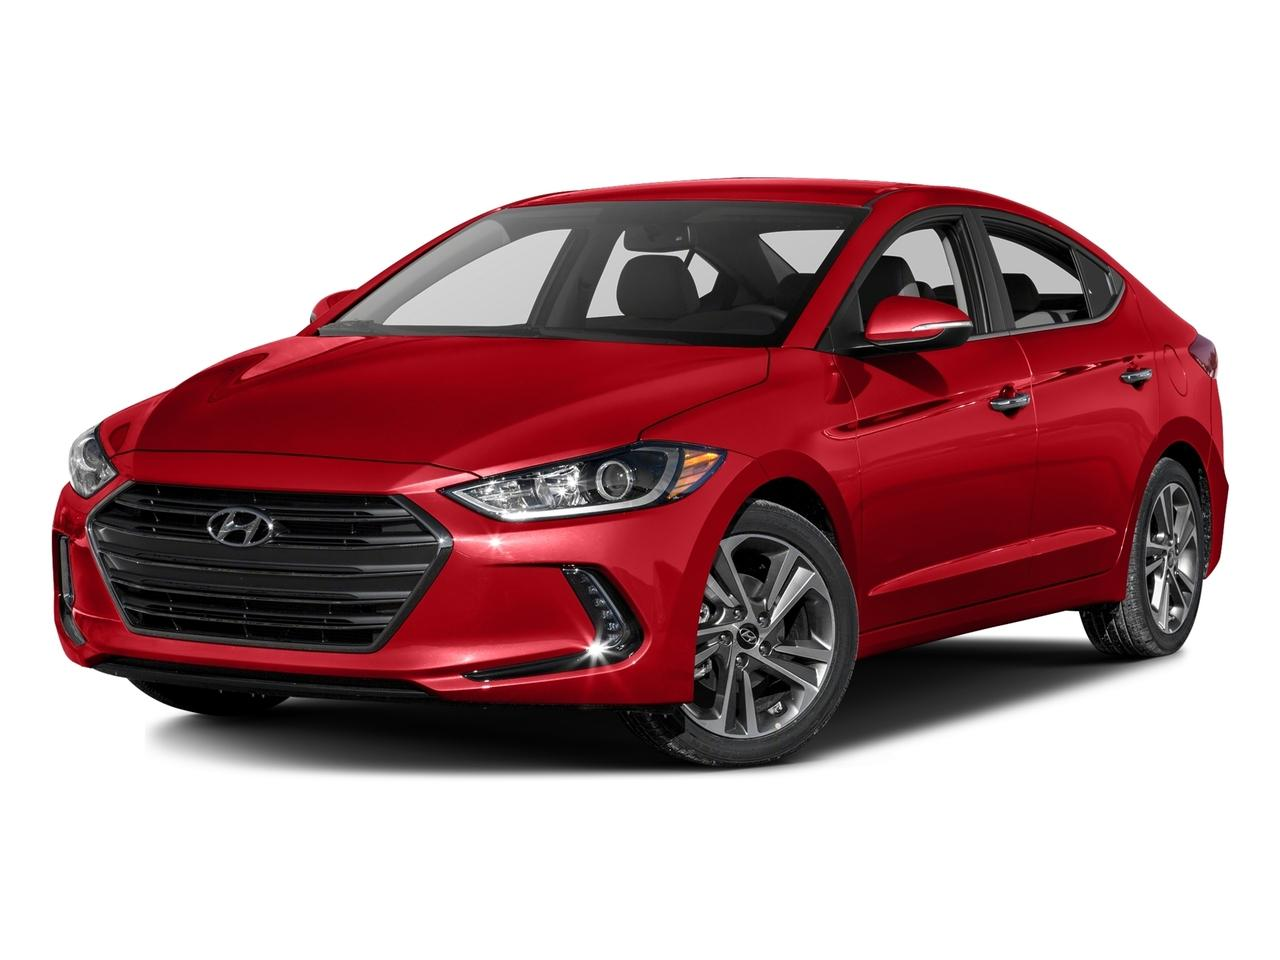 2017 Hyundai Elantra Vehicle Photo in Austin, TX 78759